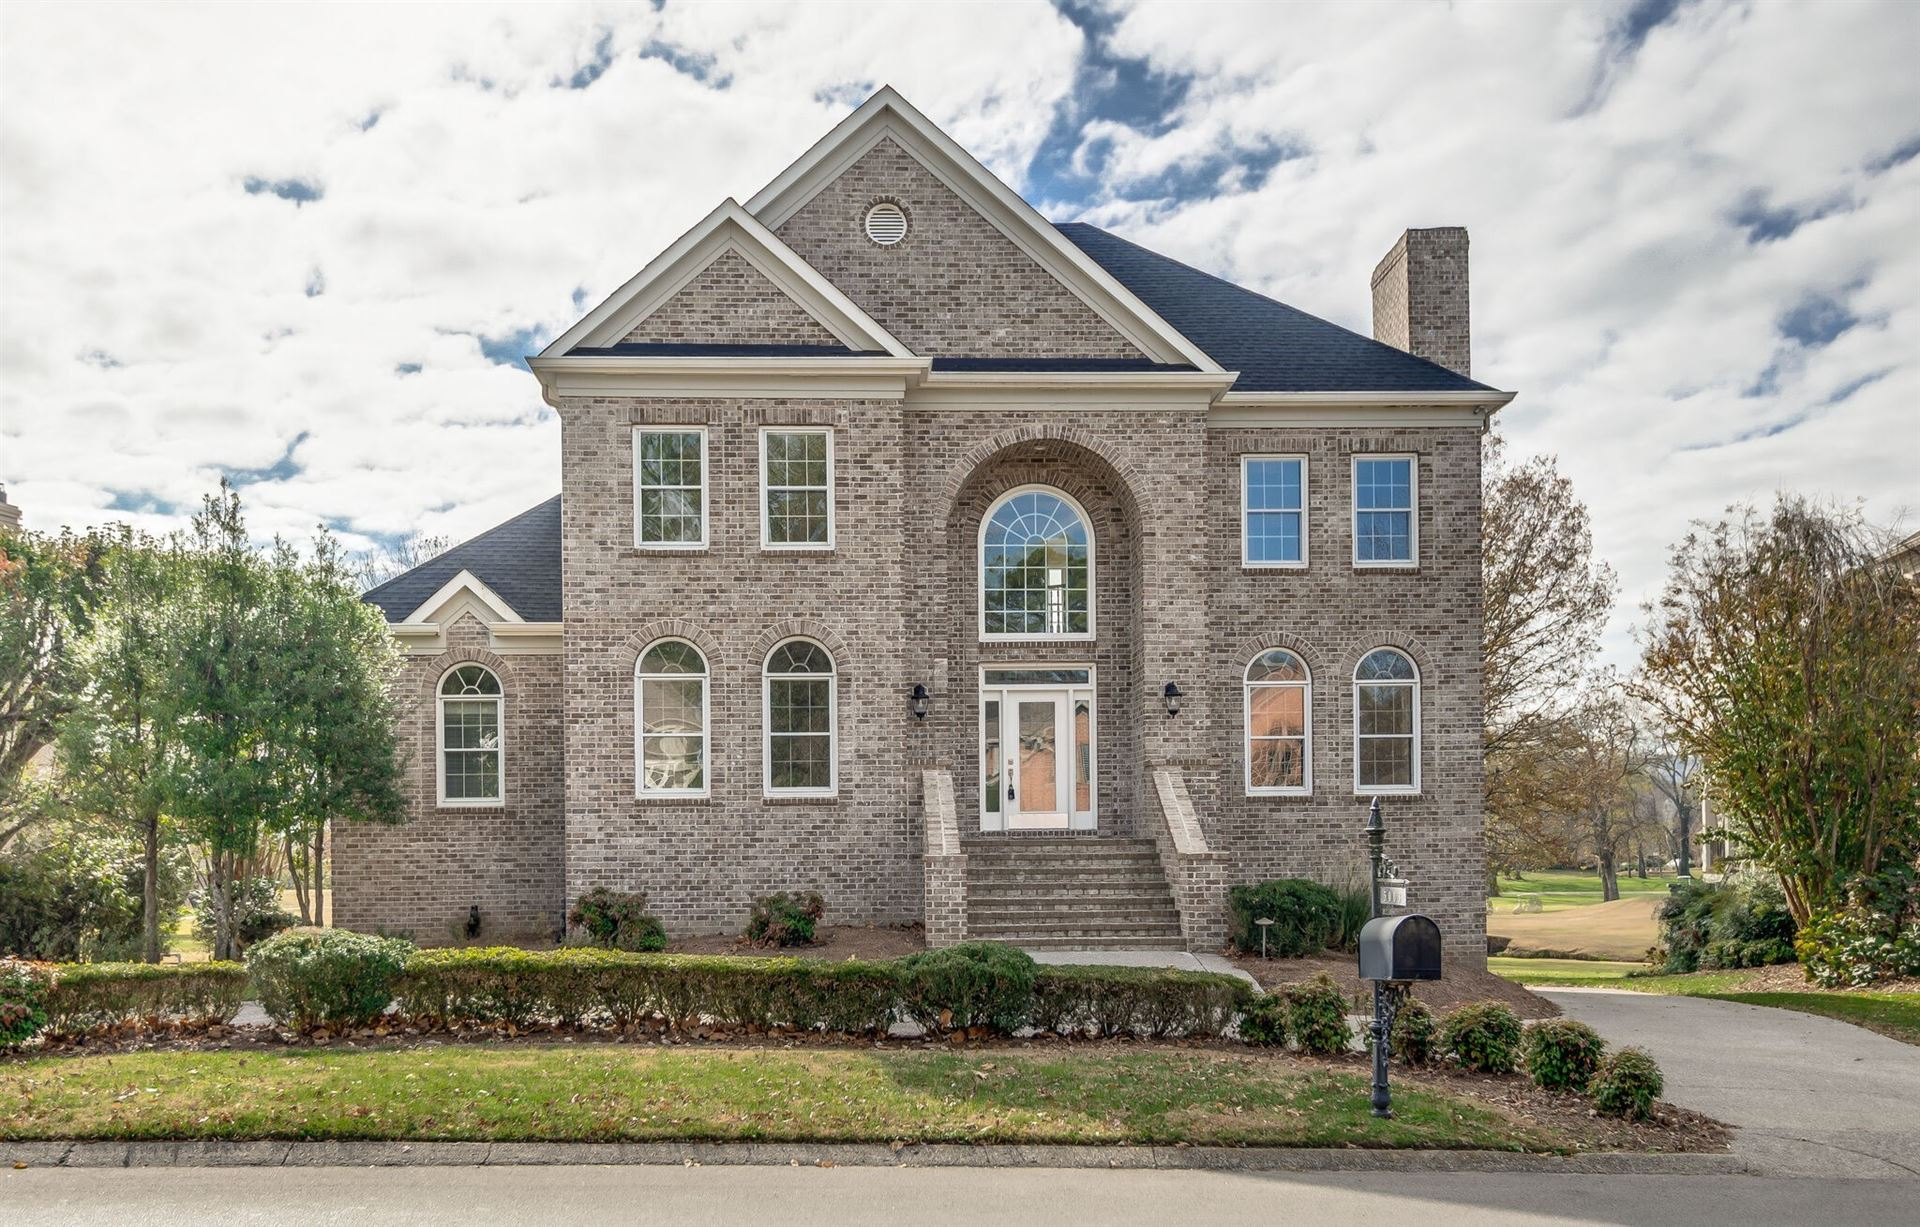 5003 Country Club Dr, Brentwood, TN 37027 - MLS#: 2239188